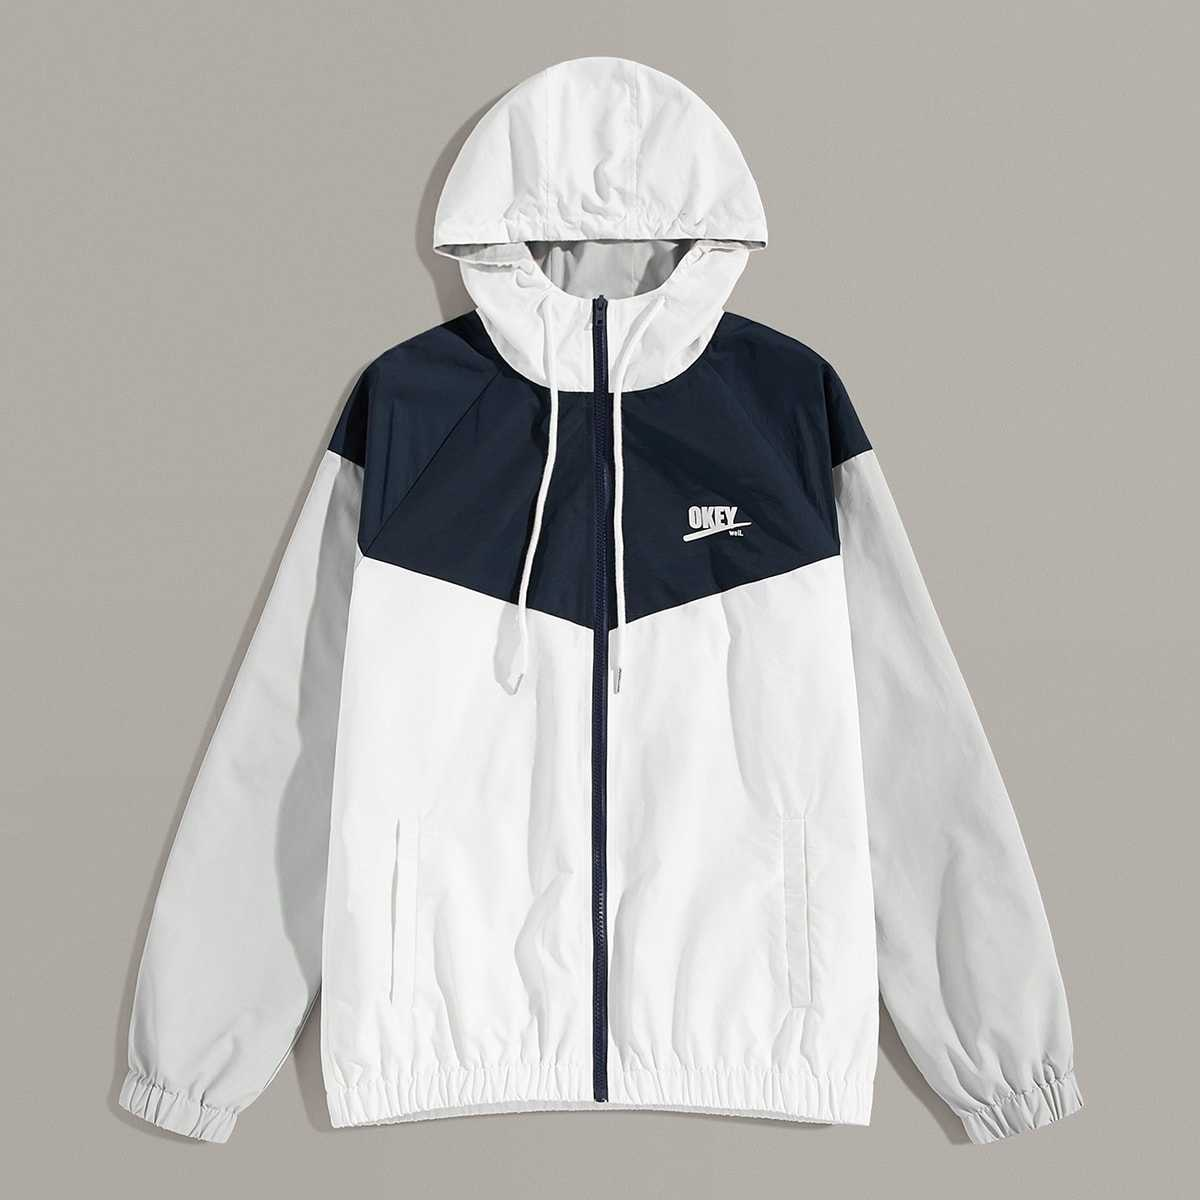 Guys Letter Drawstring Hooded Jacket in White by ROMWE on GOOFASH